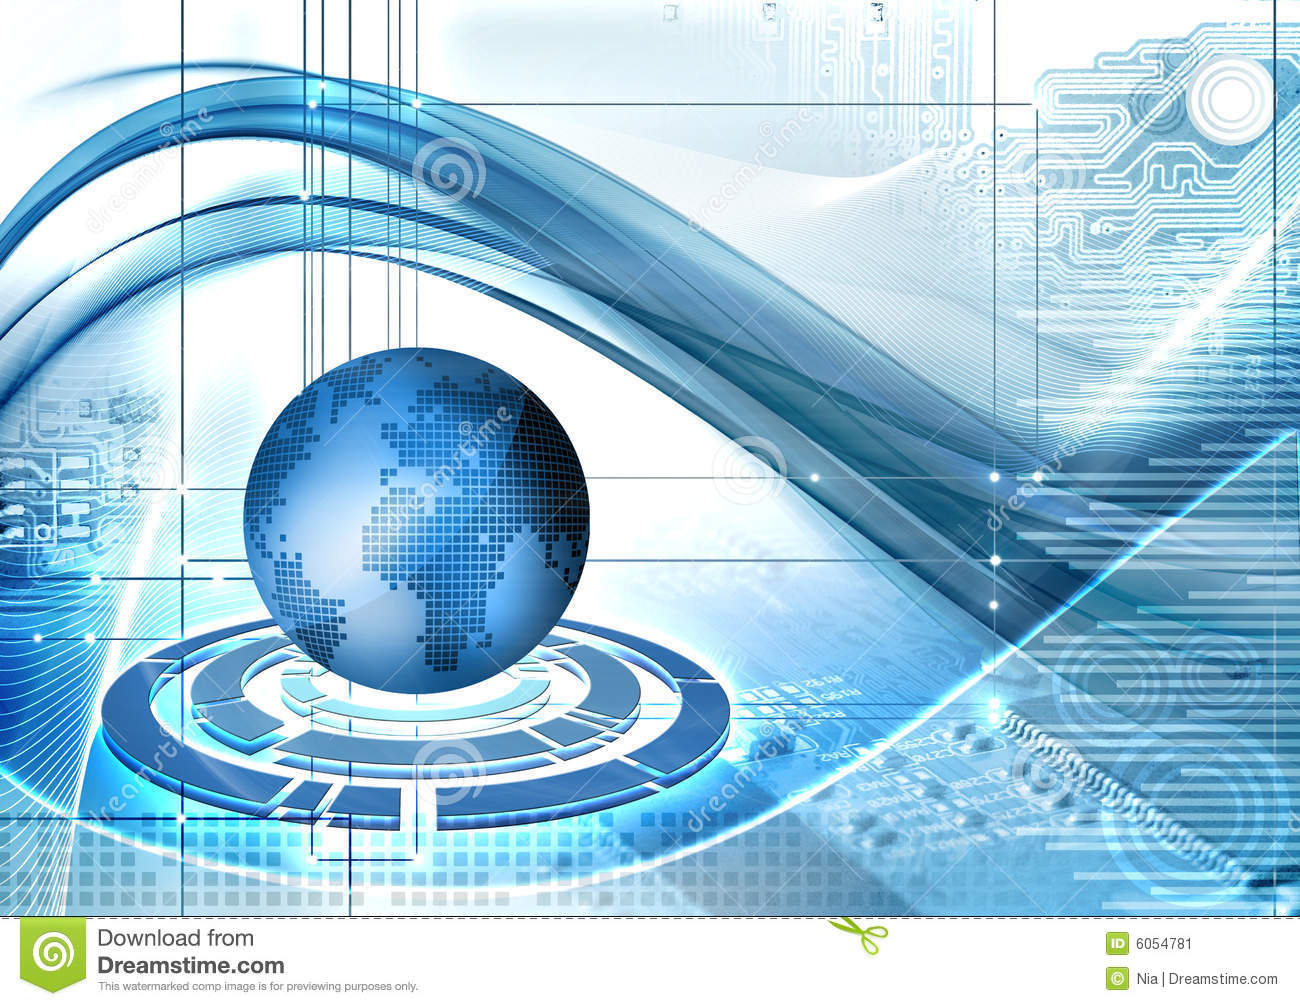 Abstarct Technology Background Stock Image - Image: 6054781